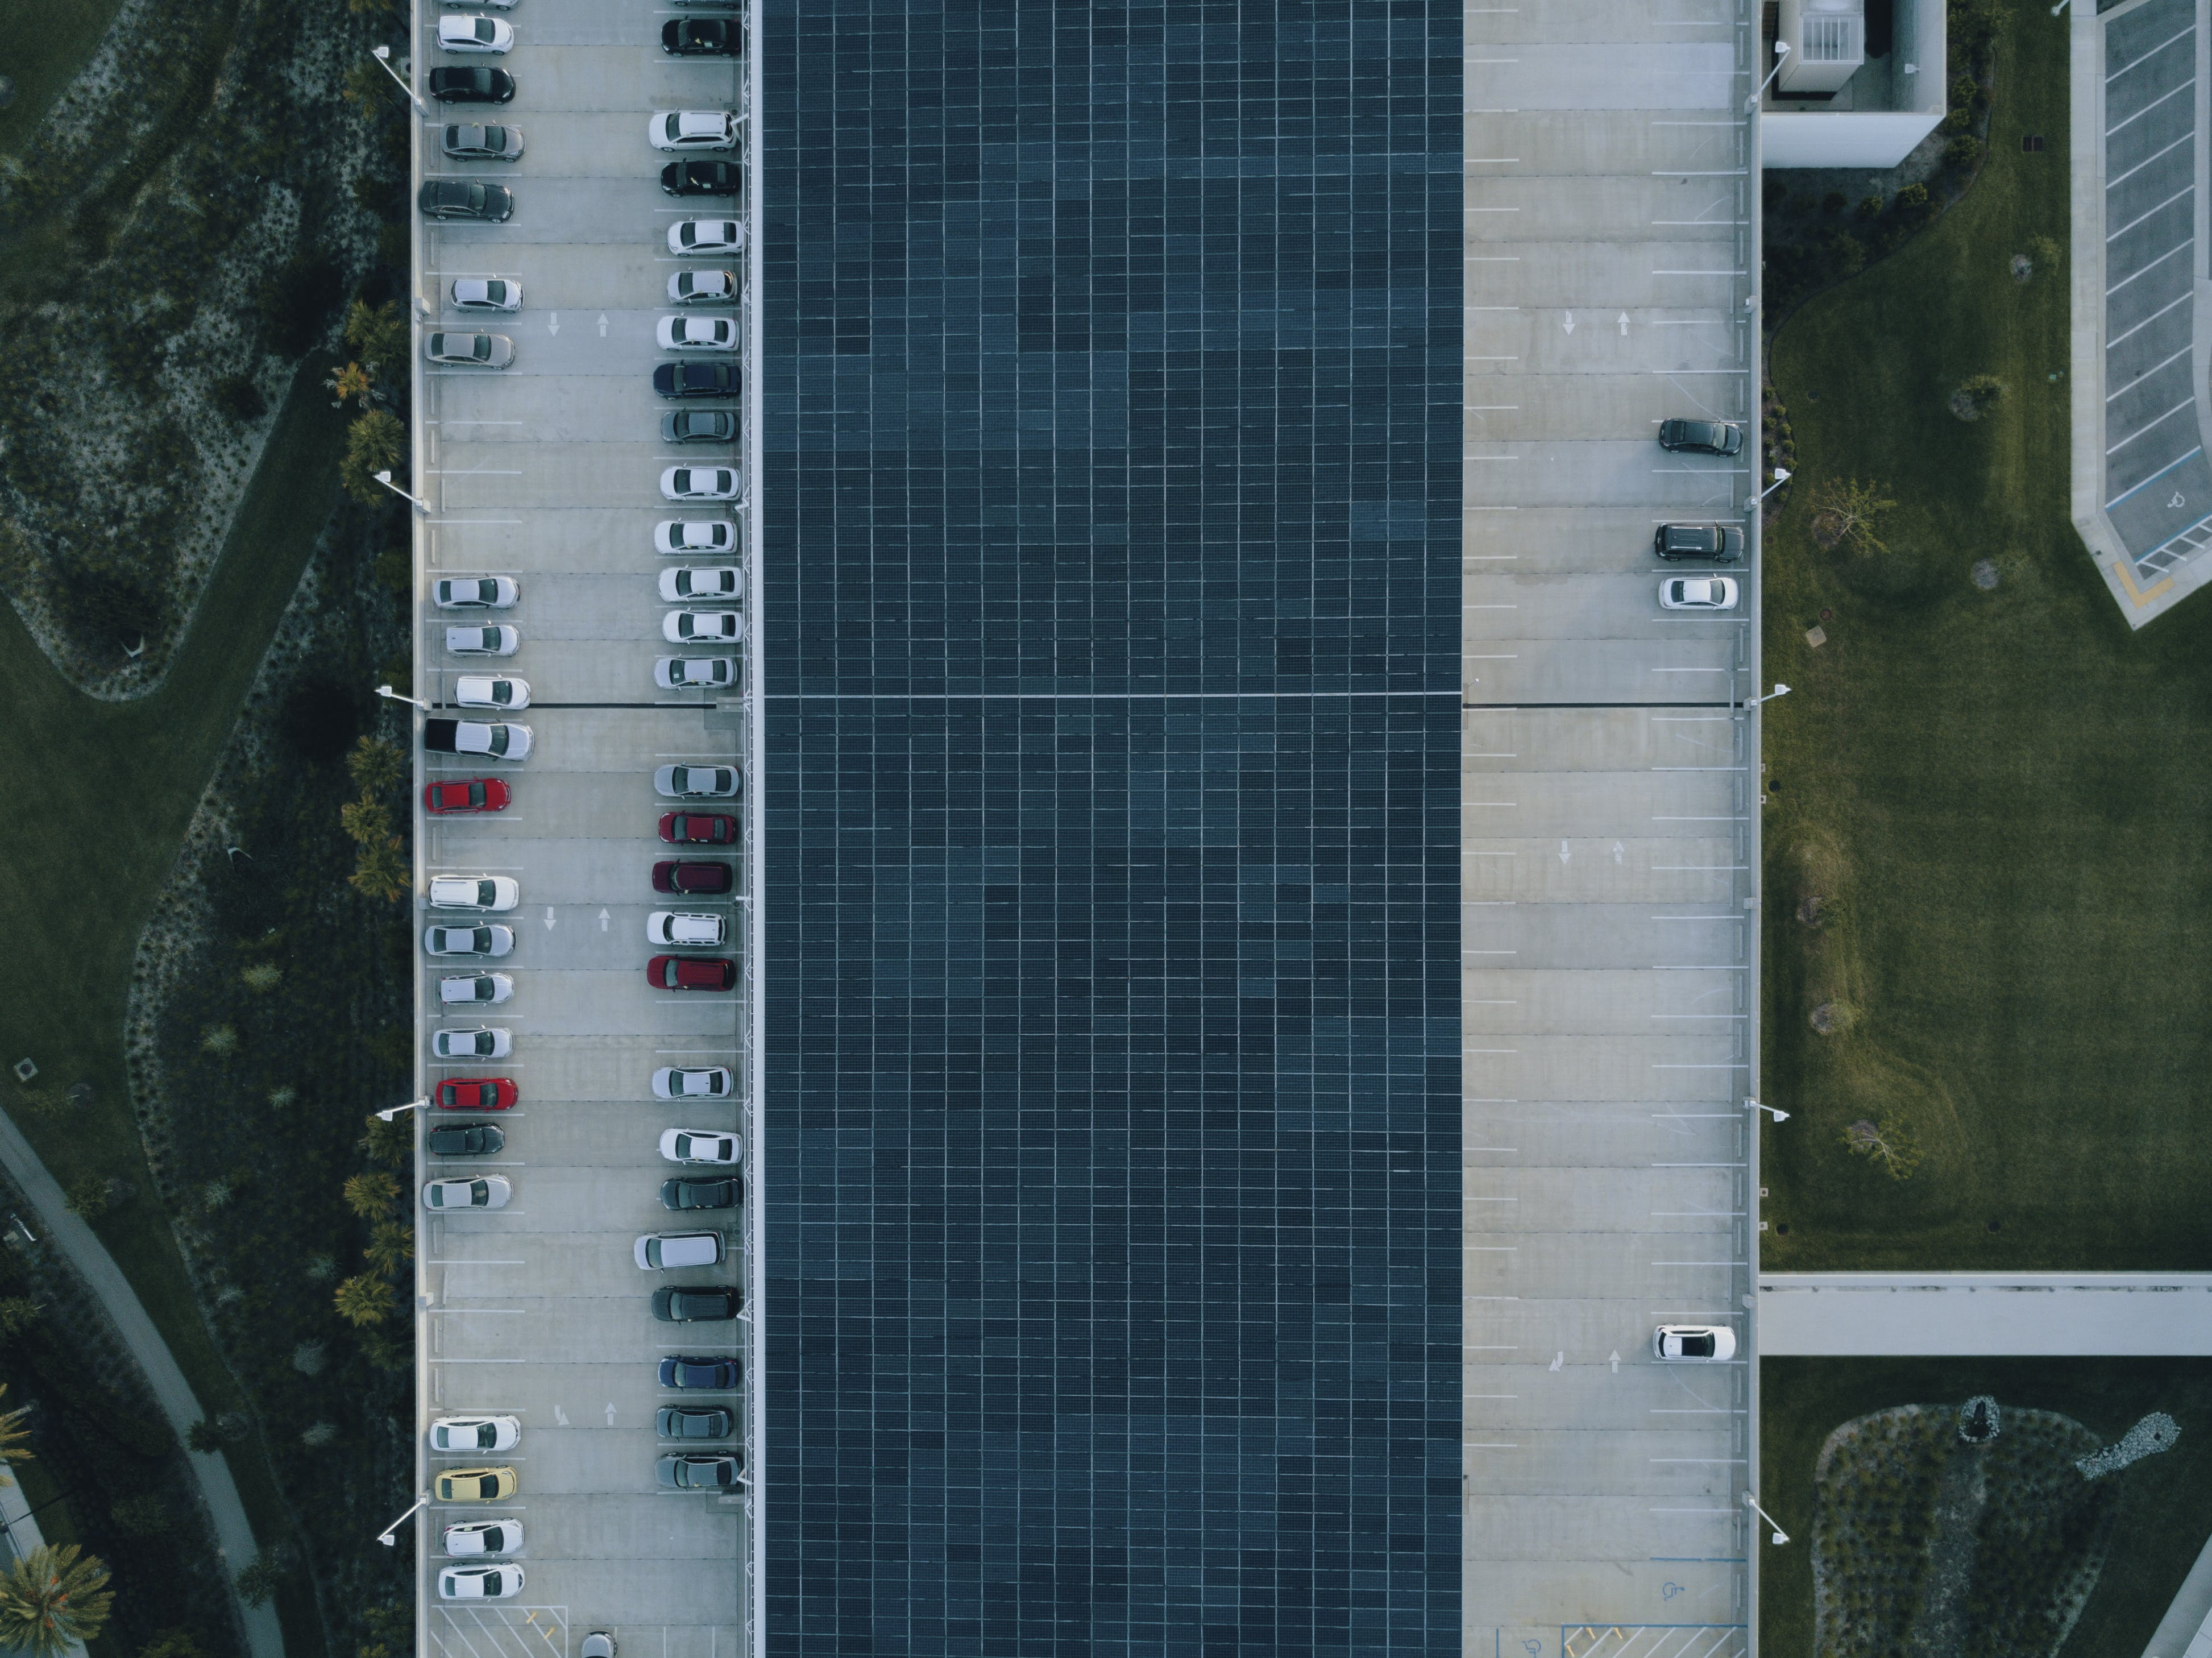 Bird's Eye View of Parking Lot